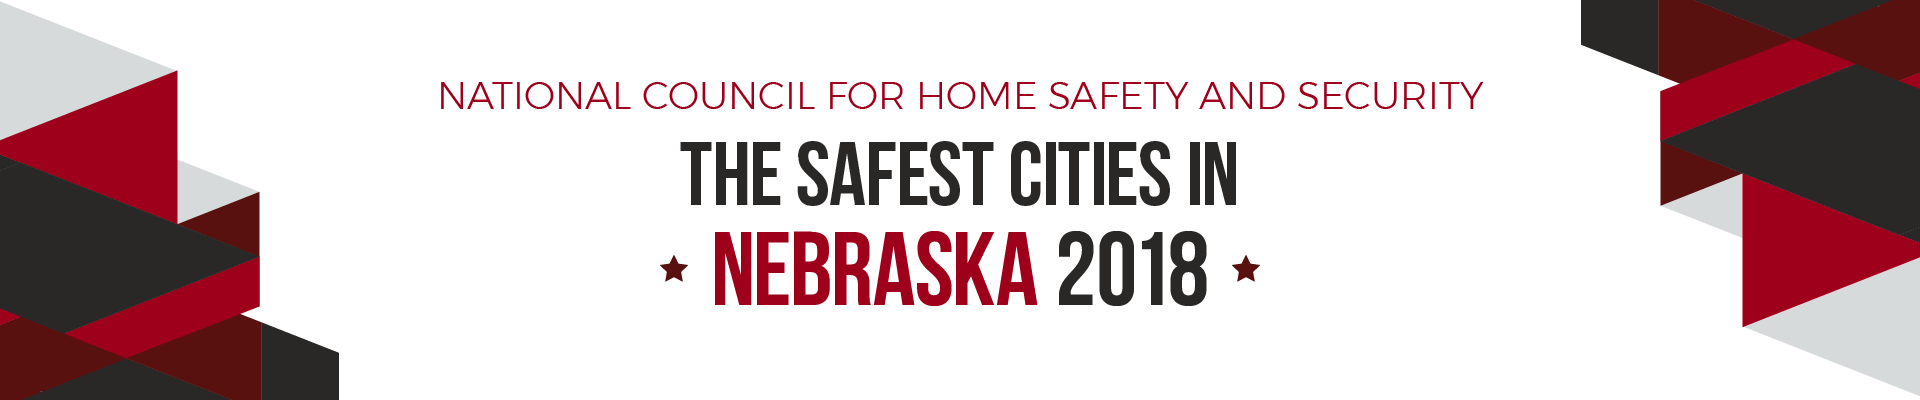 safe cities nebraska 2018